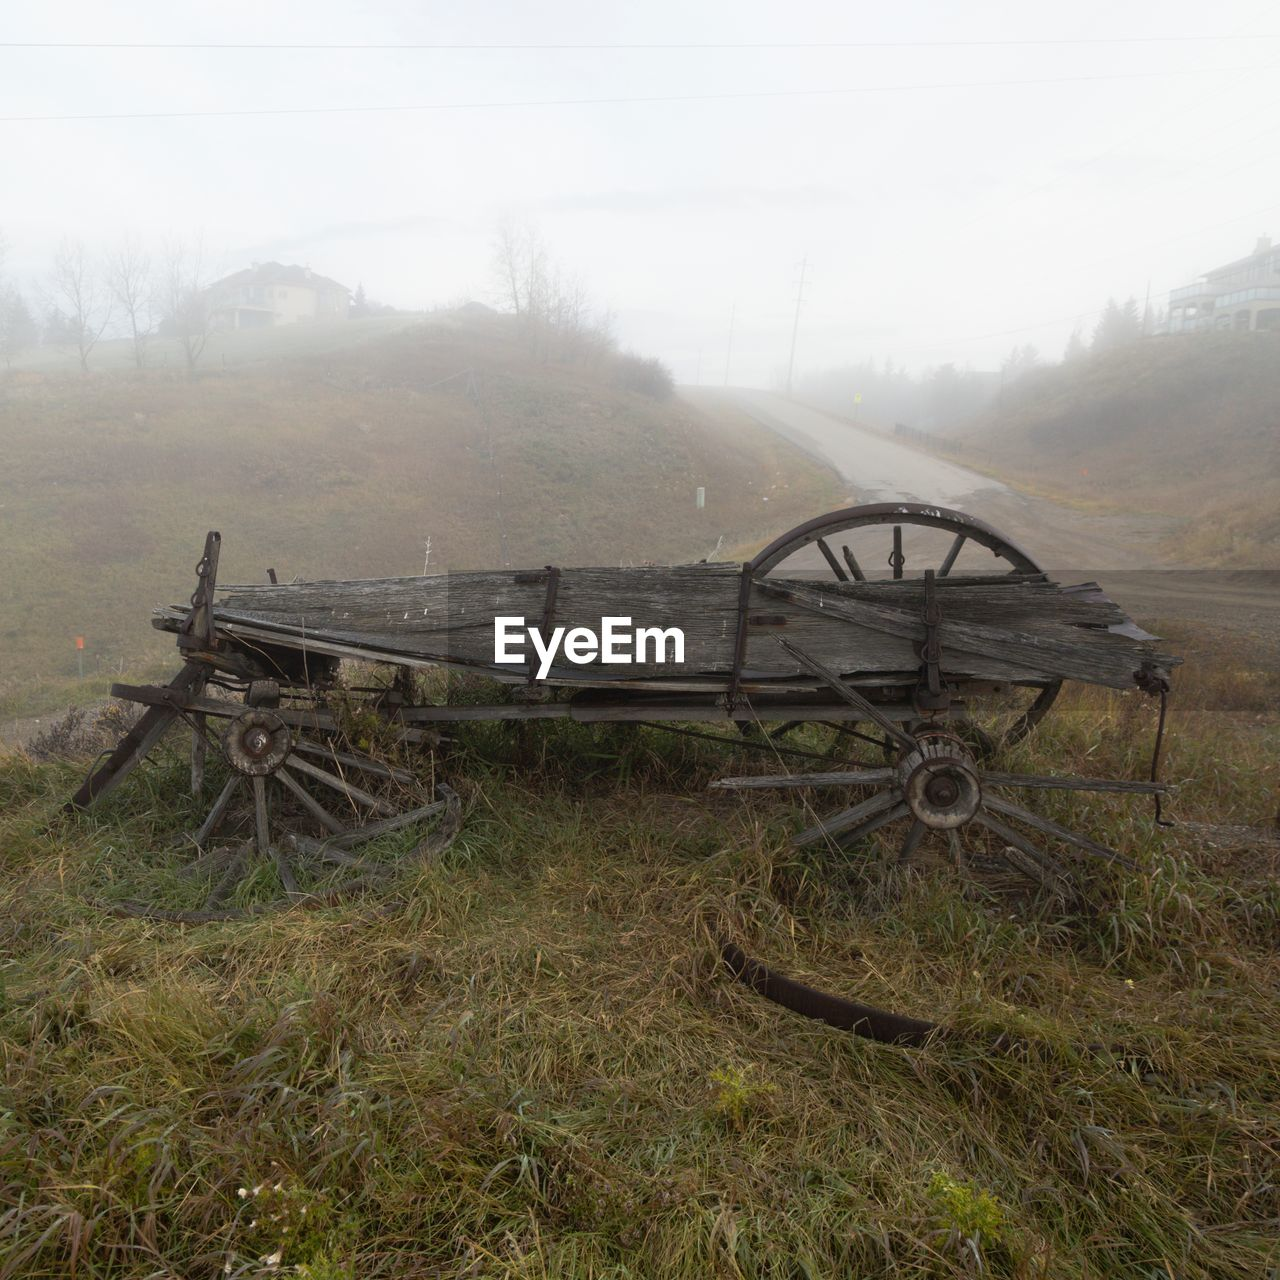 fog, land, transportation, field, nature, grass, abandoned, no people, day, landscape, mode of transportation, environment, sky, plant, tranquility, obsolete, scenics - nature, tranquil scene, beauty in nature, outdoors, wheel, deterioration